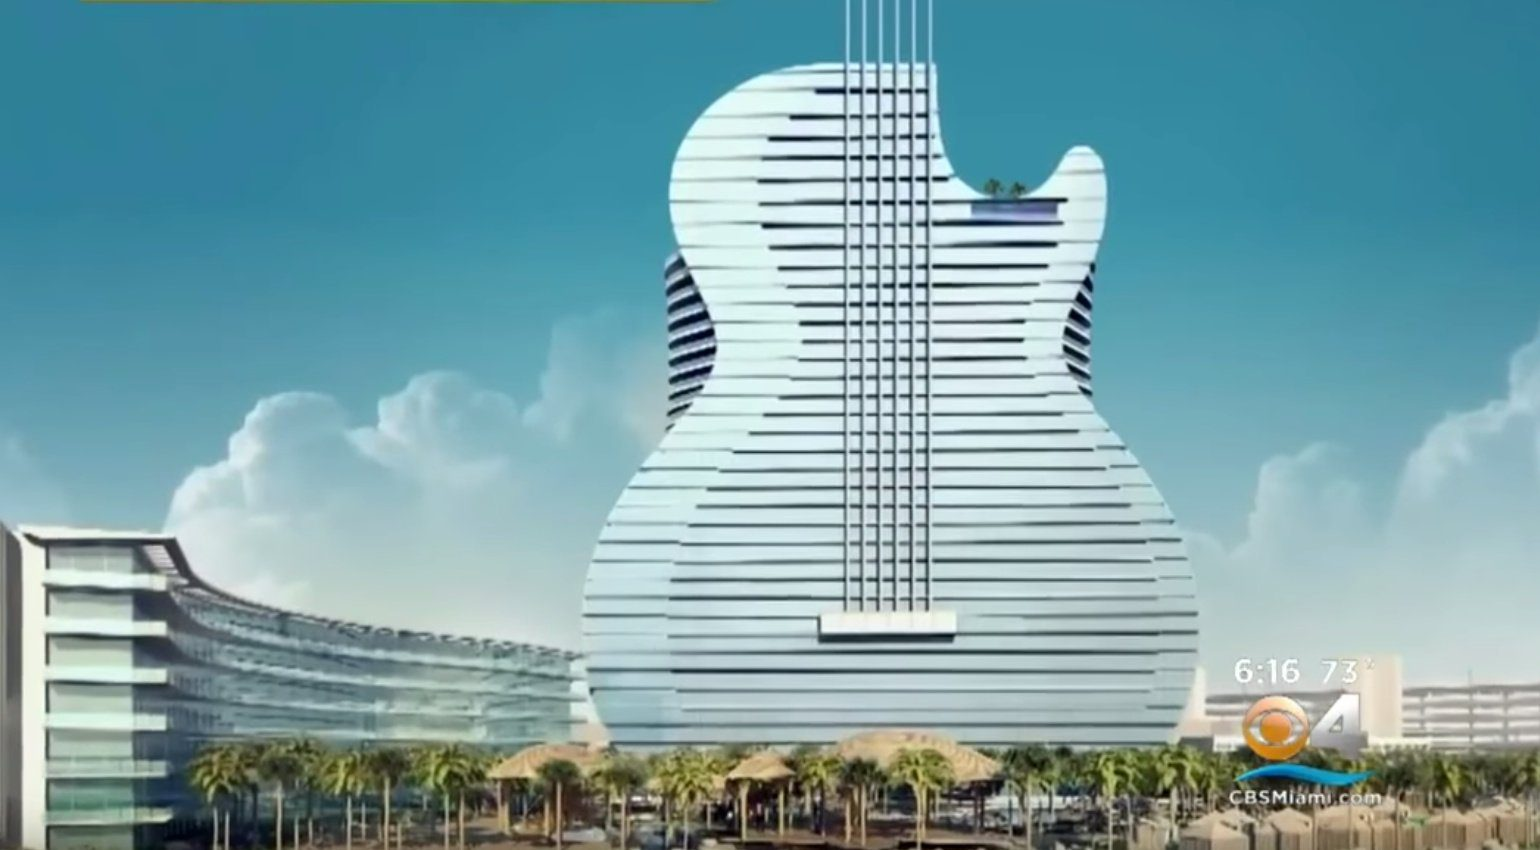 miami club casino hard rock